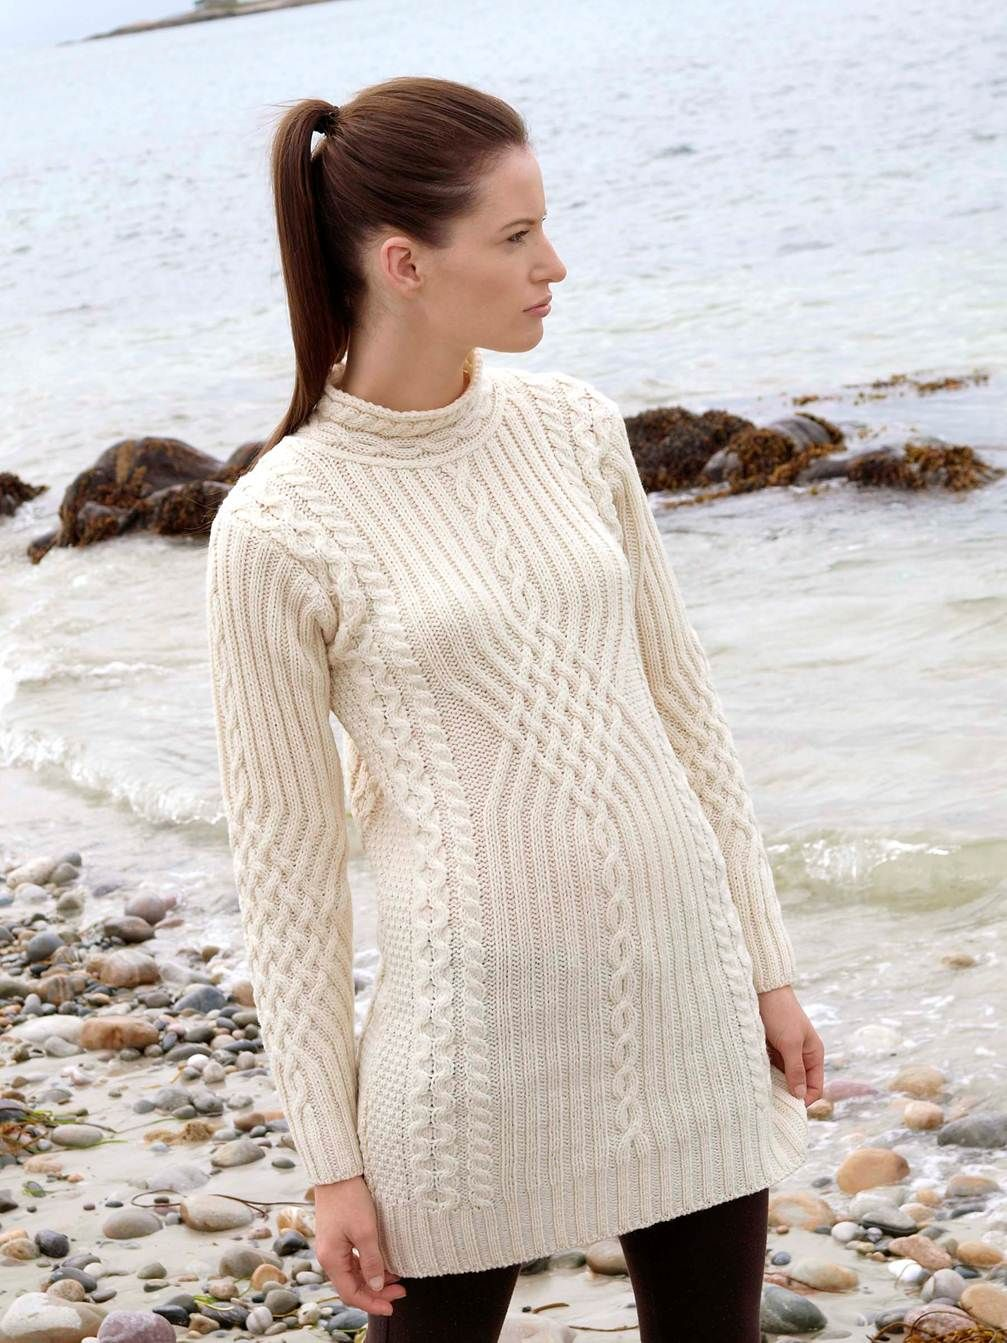 ARAN TUNIC Natallia Kulikouskaya for WEST END KNITWEAR | Tejido ...